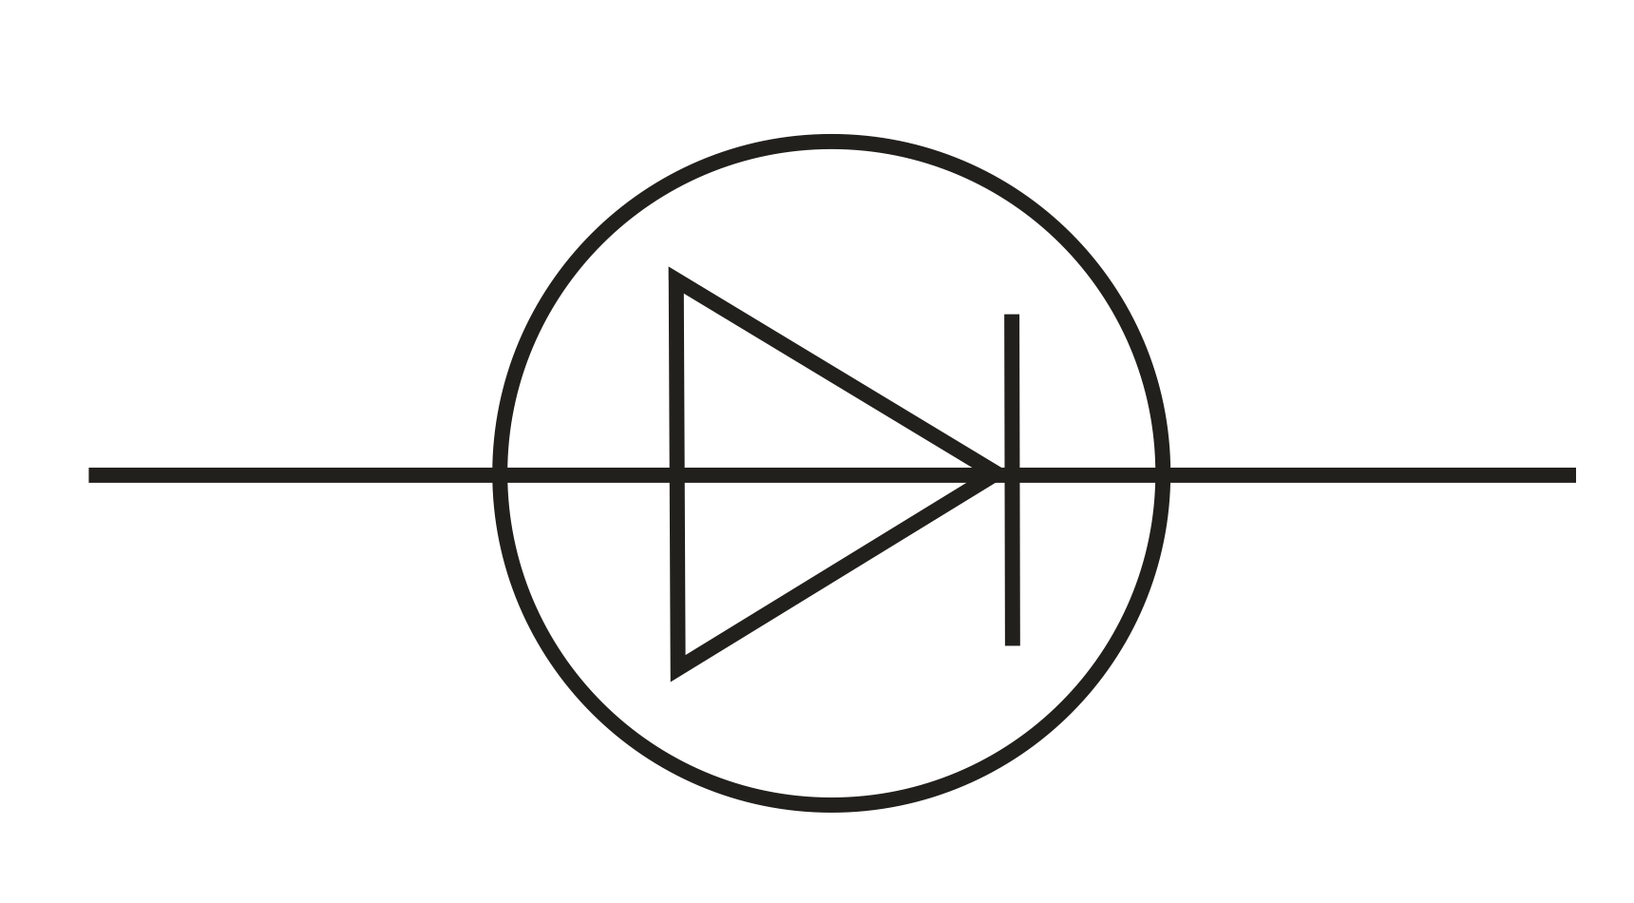 Electronic Symbol For Diode Clipart.